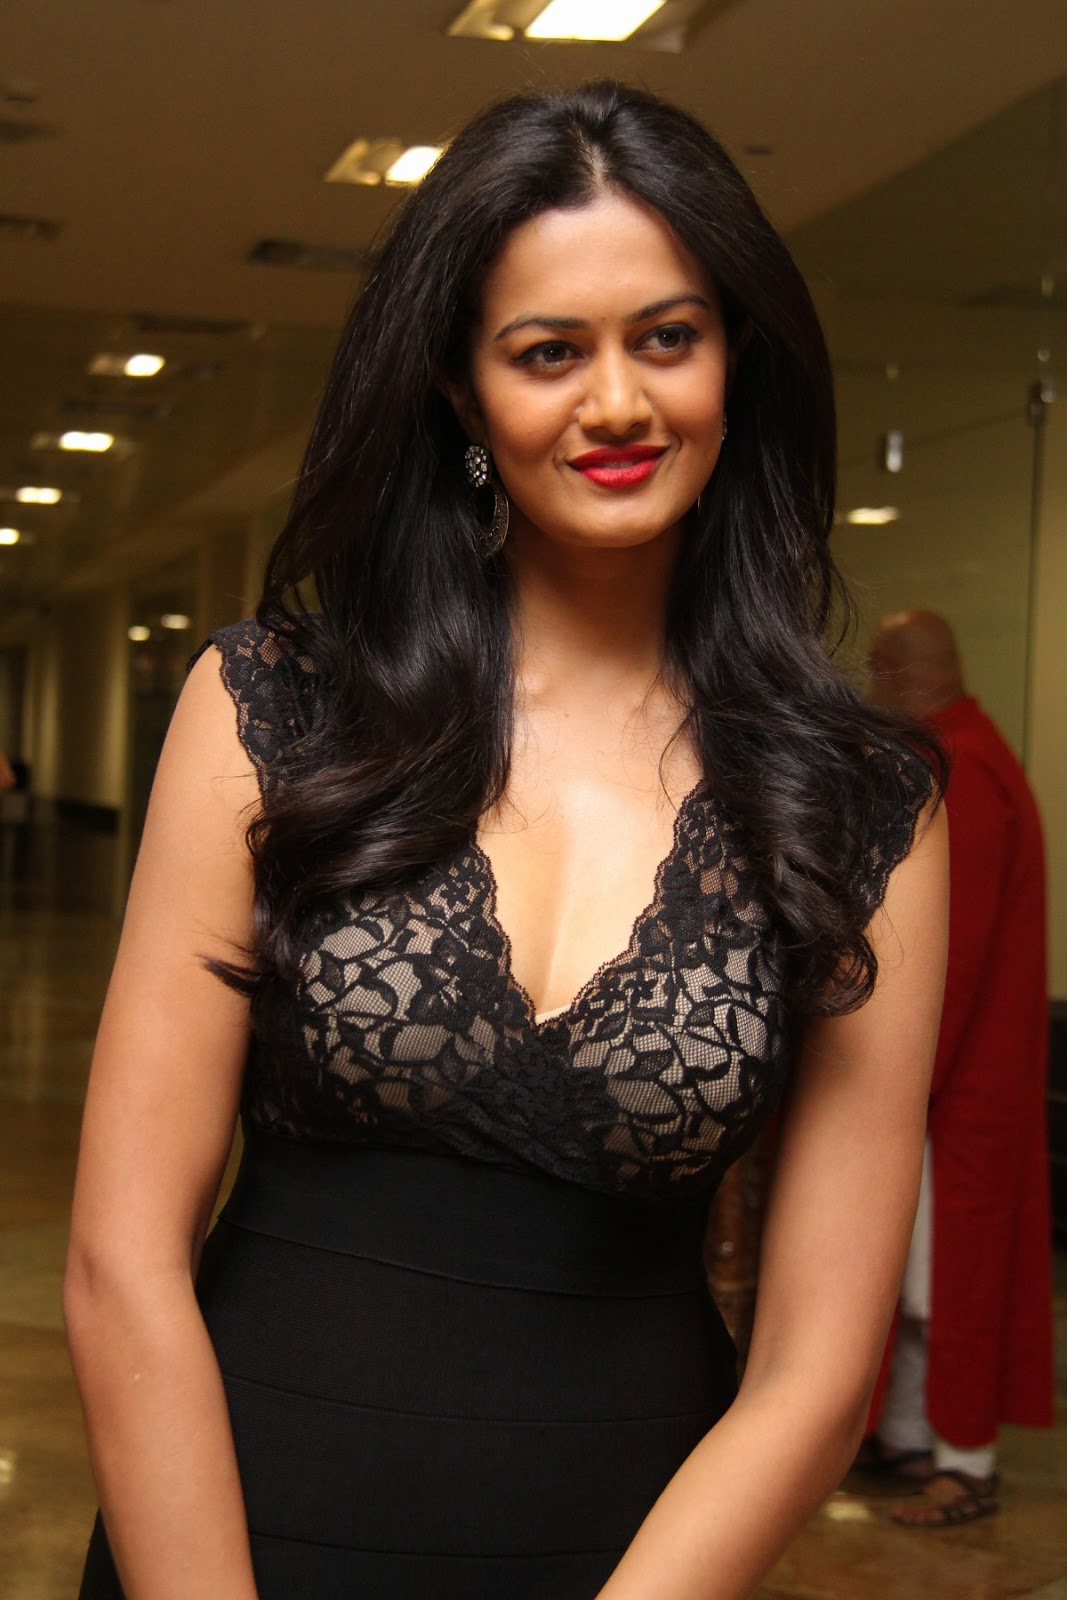 Shubra Aiyappa In Low Neck Black Gown At Miss Hyderabad Event